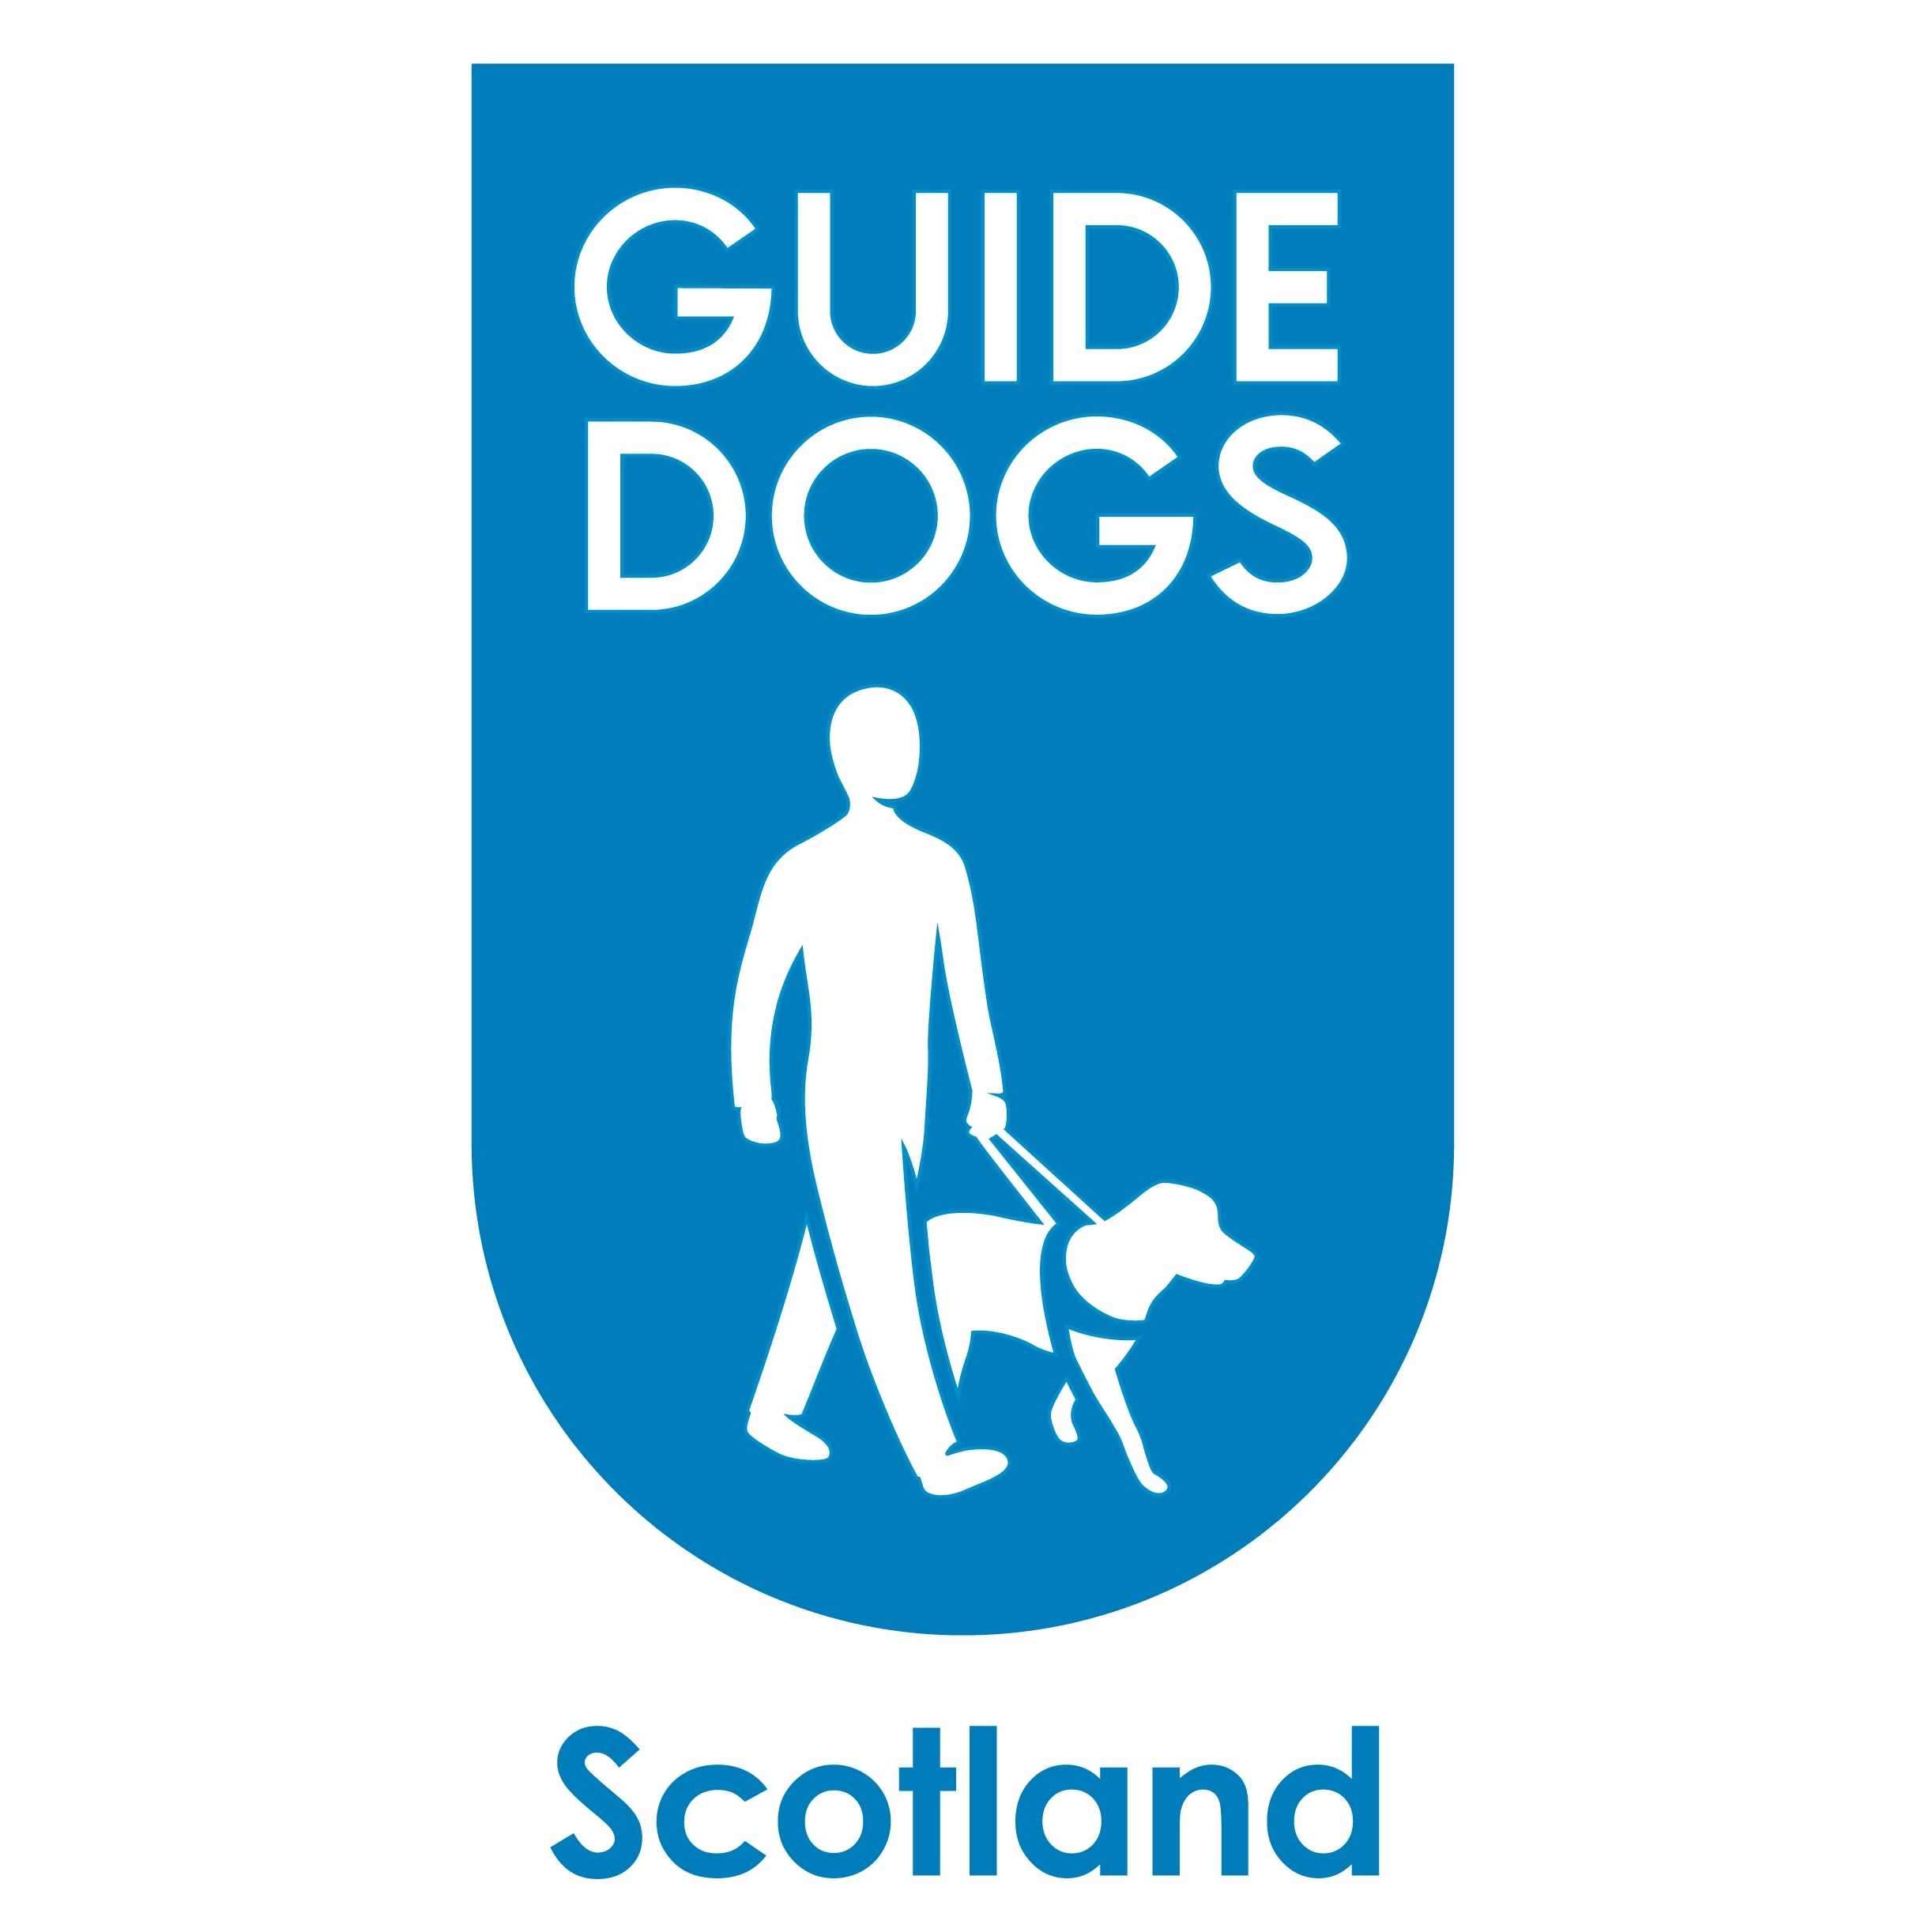 Guide Dogs Scotland North East Fife Branch